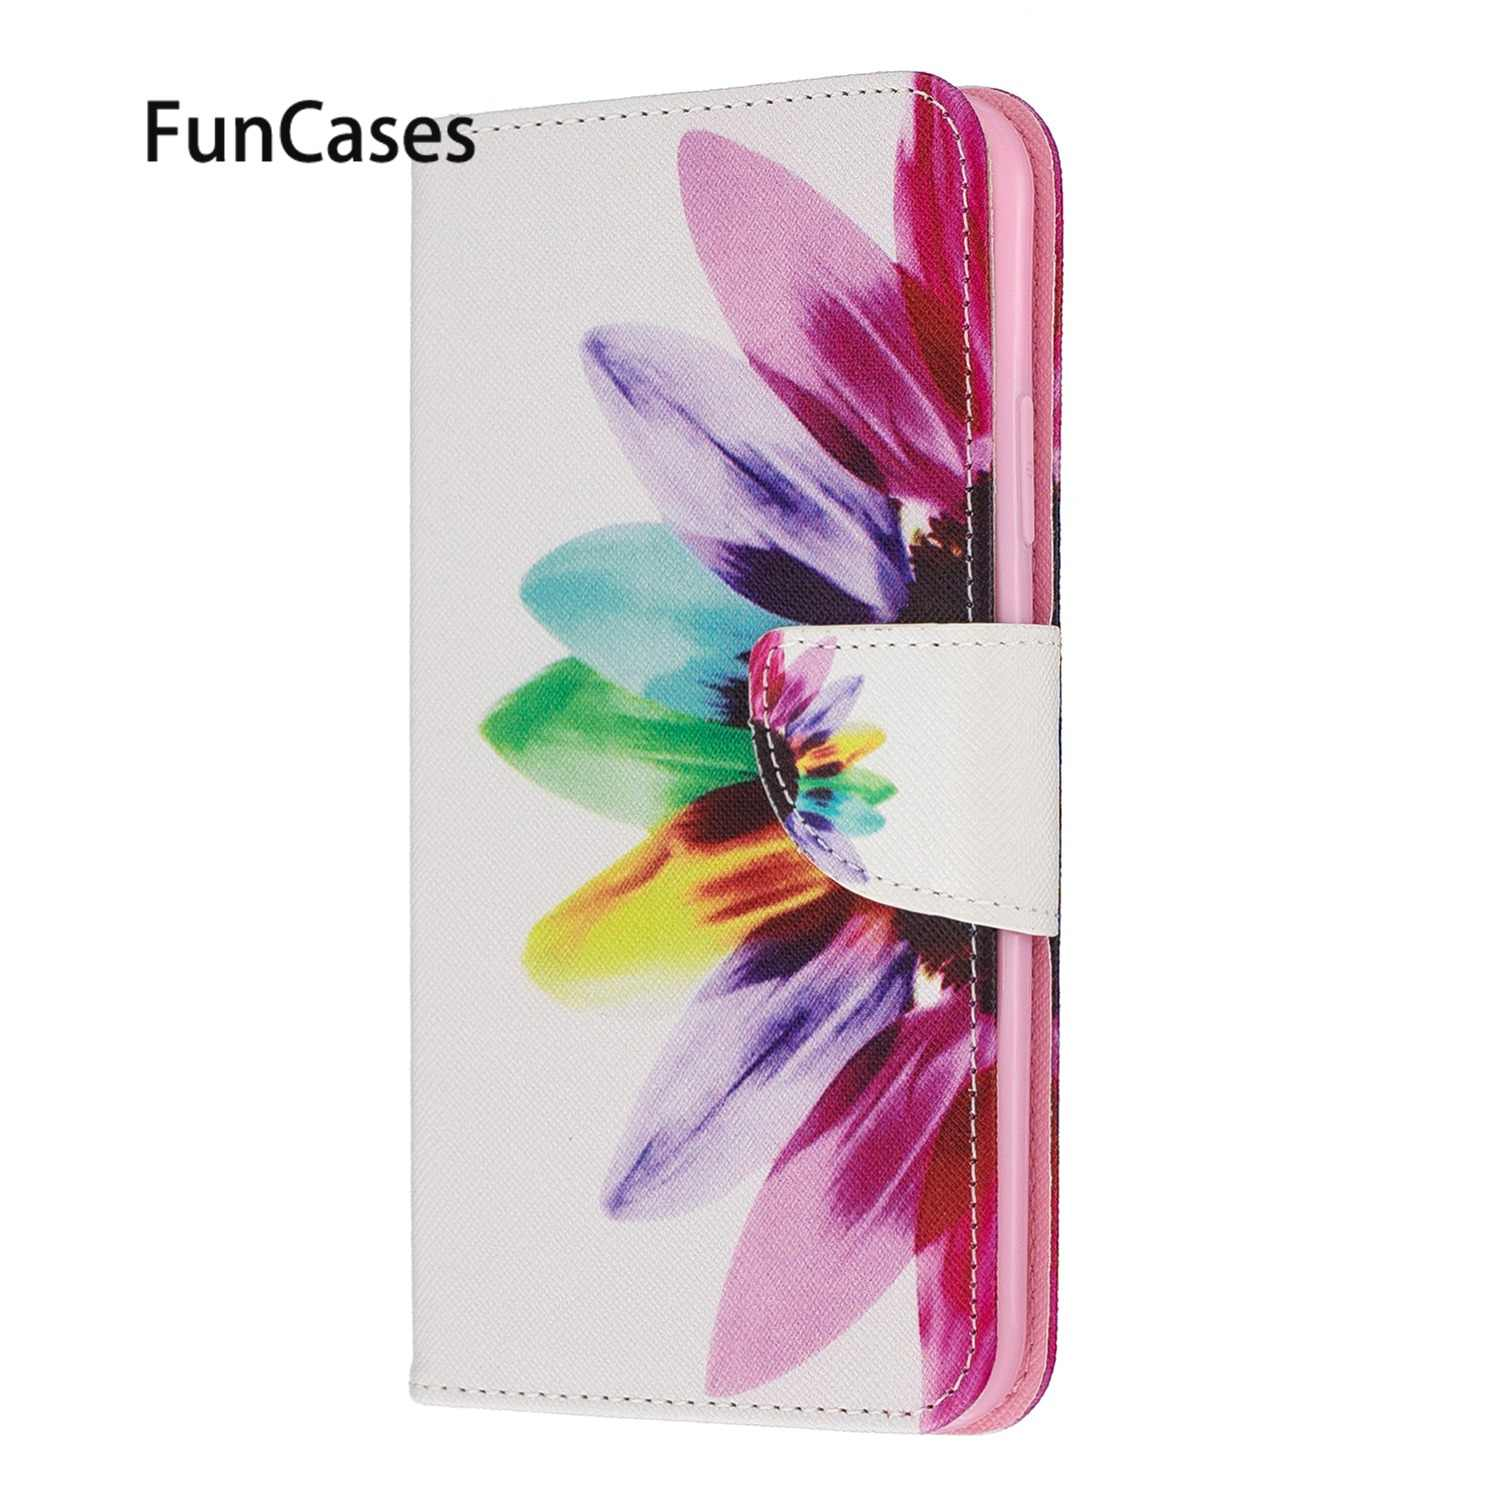 Exotic Cell Cases For phone case Huawei Y7 Prime 2019 Flip Book Case sFor Positivo Huawei Y7 2019 Enjoy 9 Honor 8S 8A Y6 Pro Y5